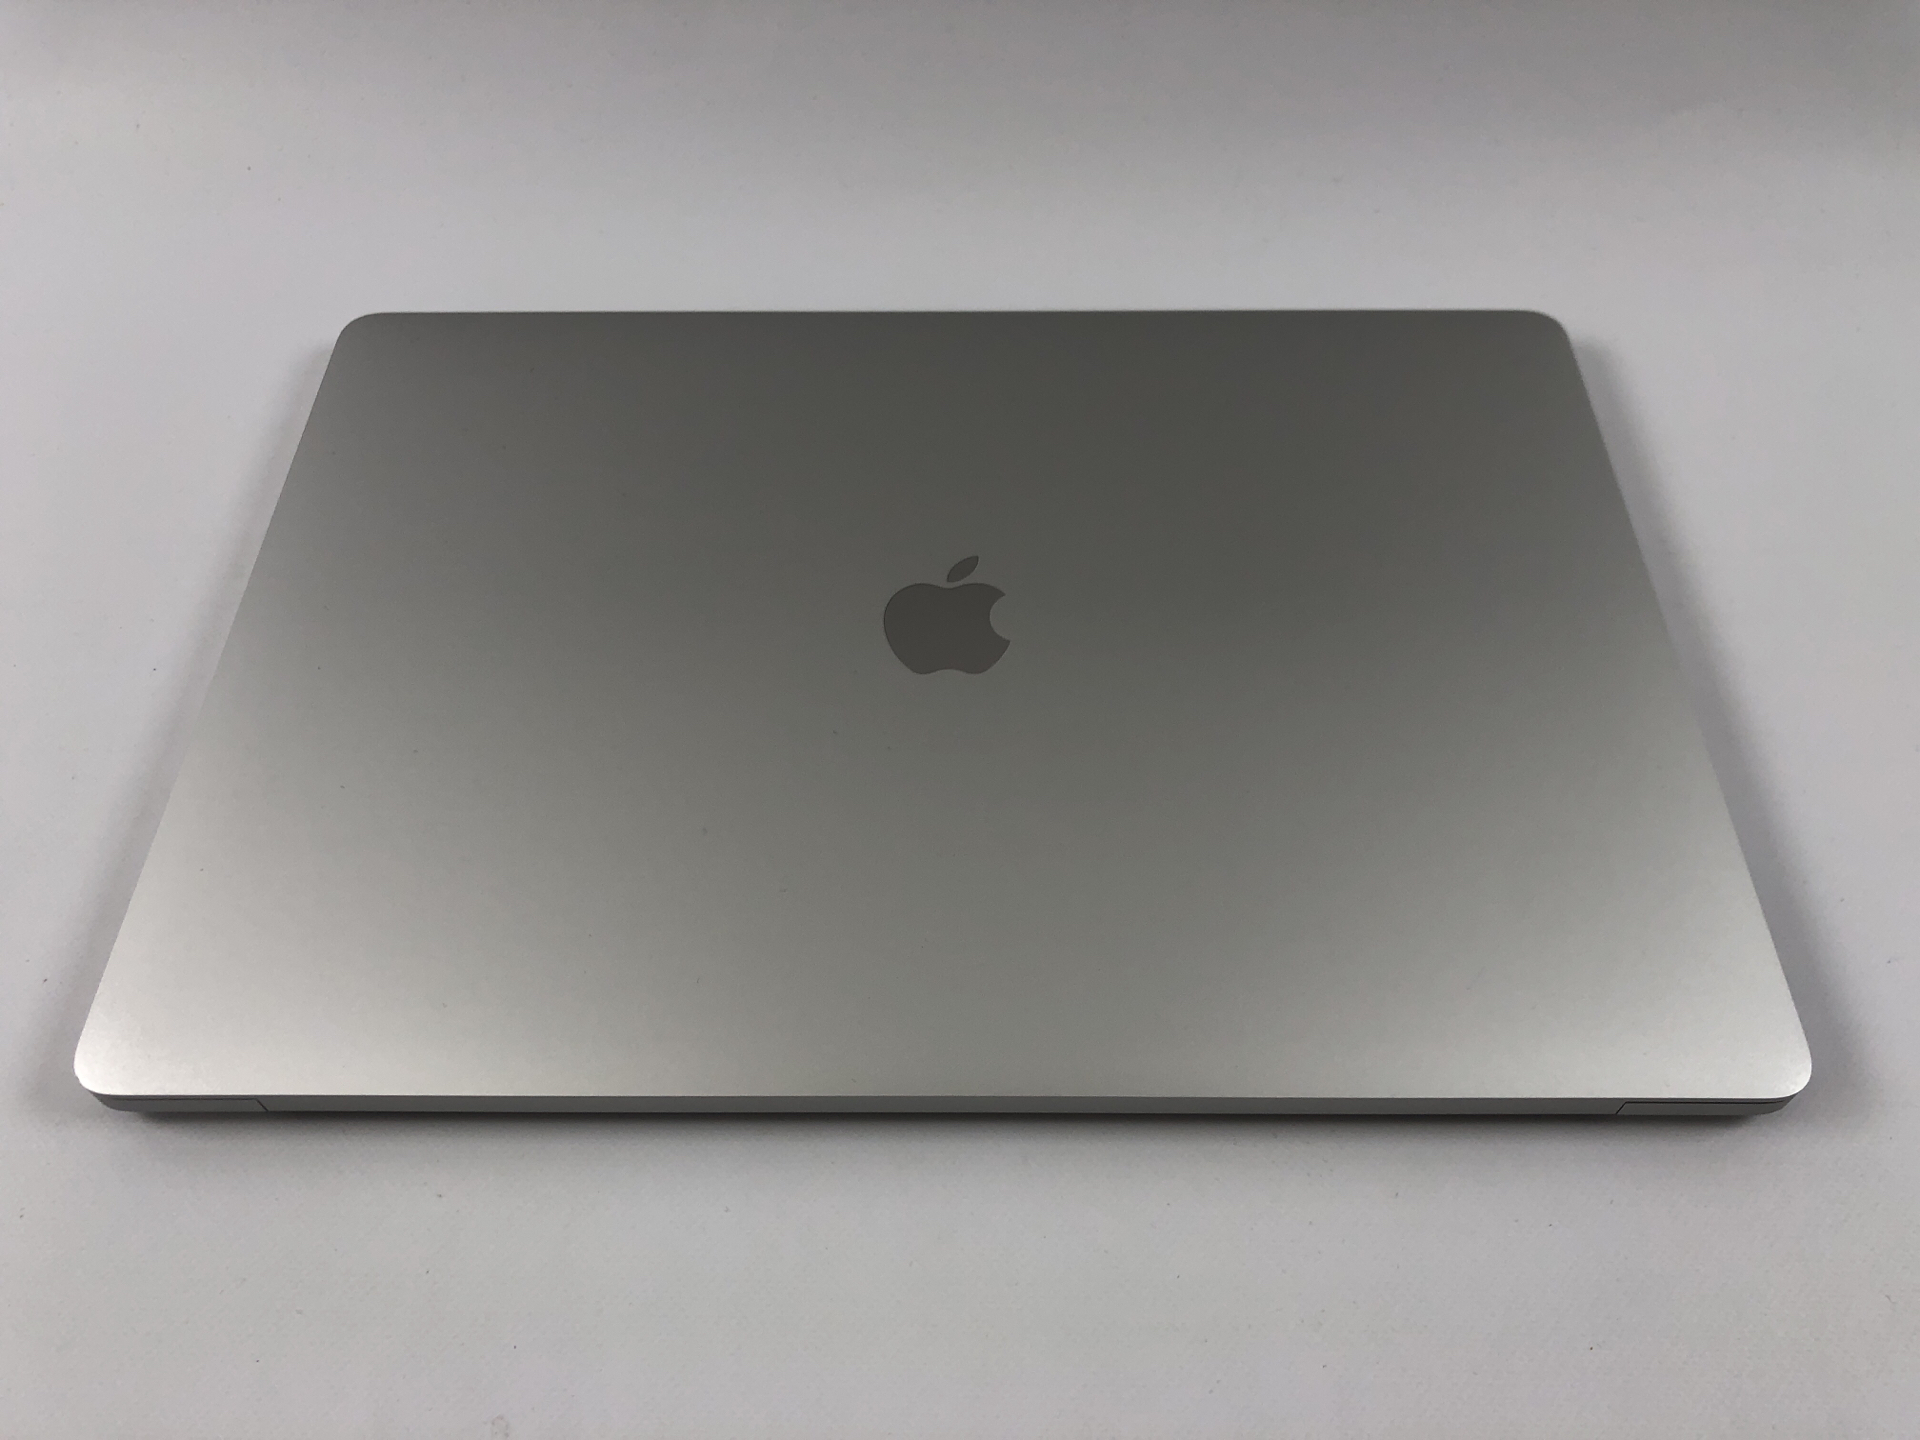 "MacBook Pro 16"" Touch Bar Late 2019 (Intel 8-Core i9 2.3 GHz 16 GB RAM 1 TB SSD), Silver, Intel 8-Core i9 2.3 GHz, 16 GB RAM, 1 TB SSD, Bild 2"